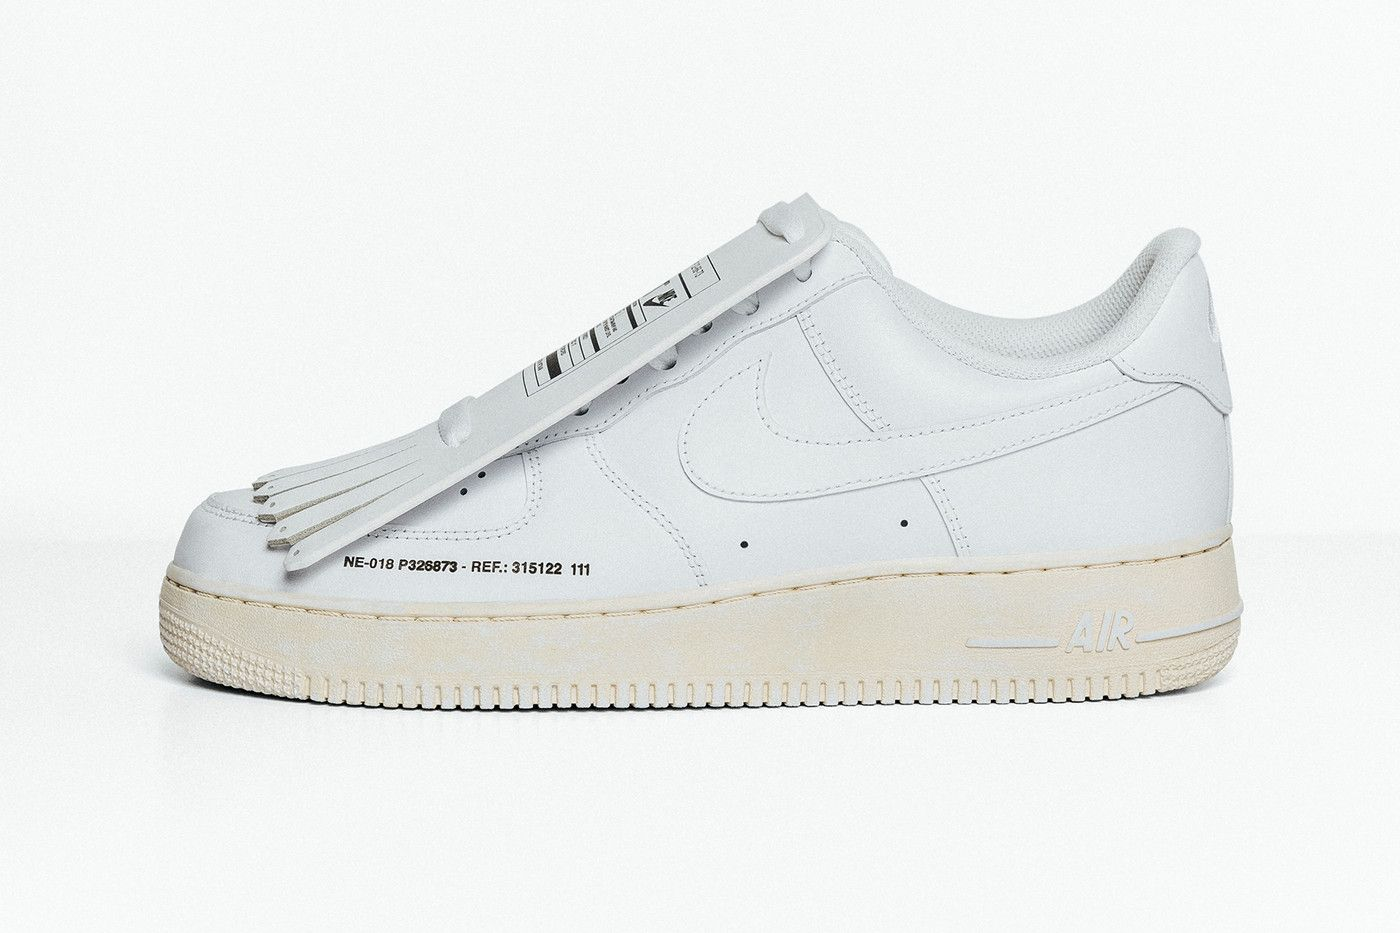 79179dfb126 Piet Nike Air Force 1 Old Golf Shoes white off-white release info  collaborations sneakers